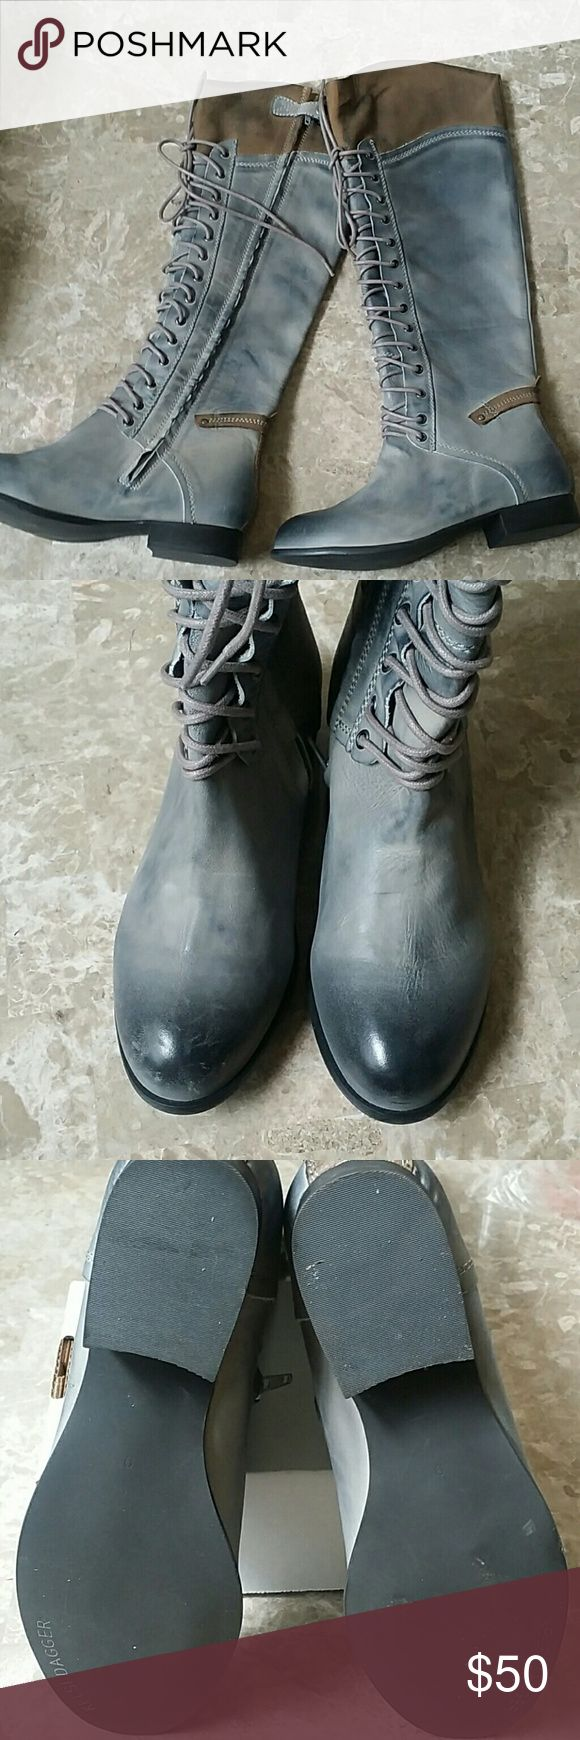 Kelsi  Dagger Boot Tall Kelsi Dagger distressed riding boot, gray and tan, Sz 9, Excellent condition, only worn a few times Kelsi Dagger Shoes Lace Up Boots